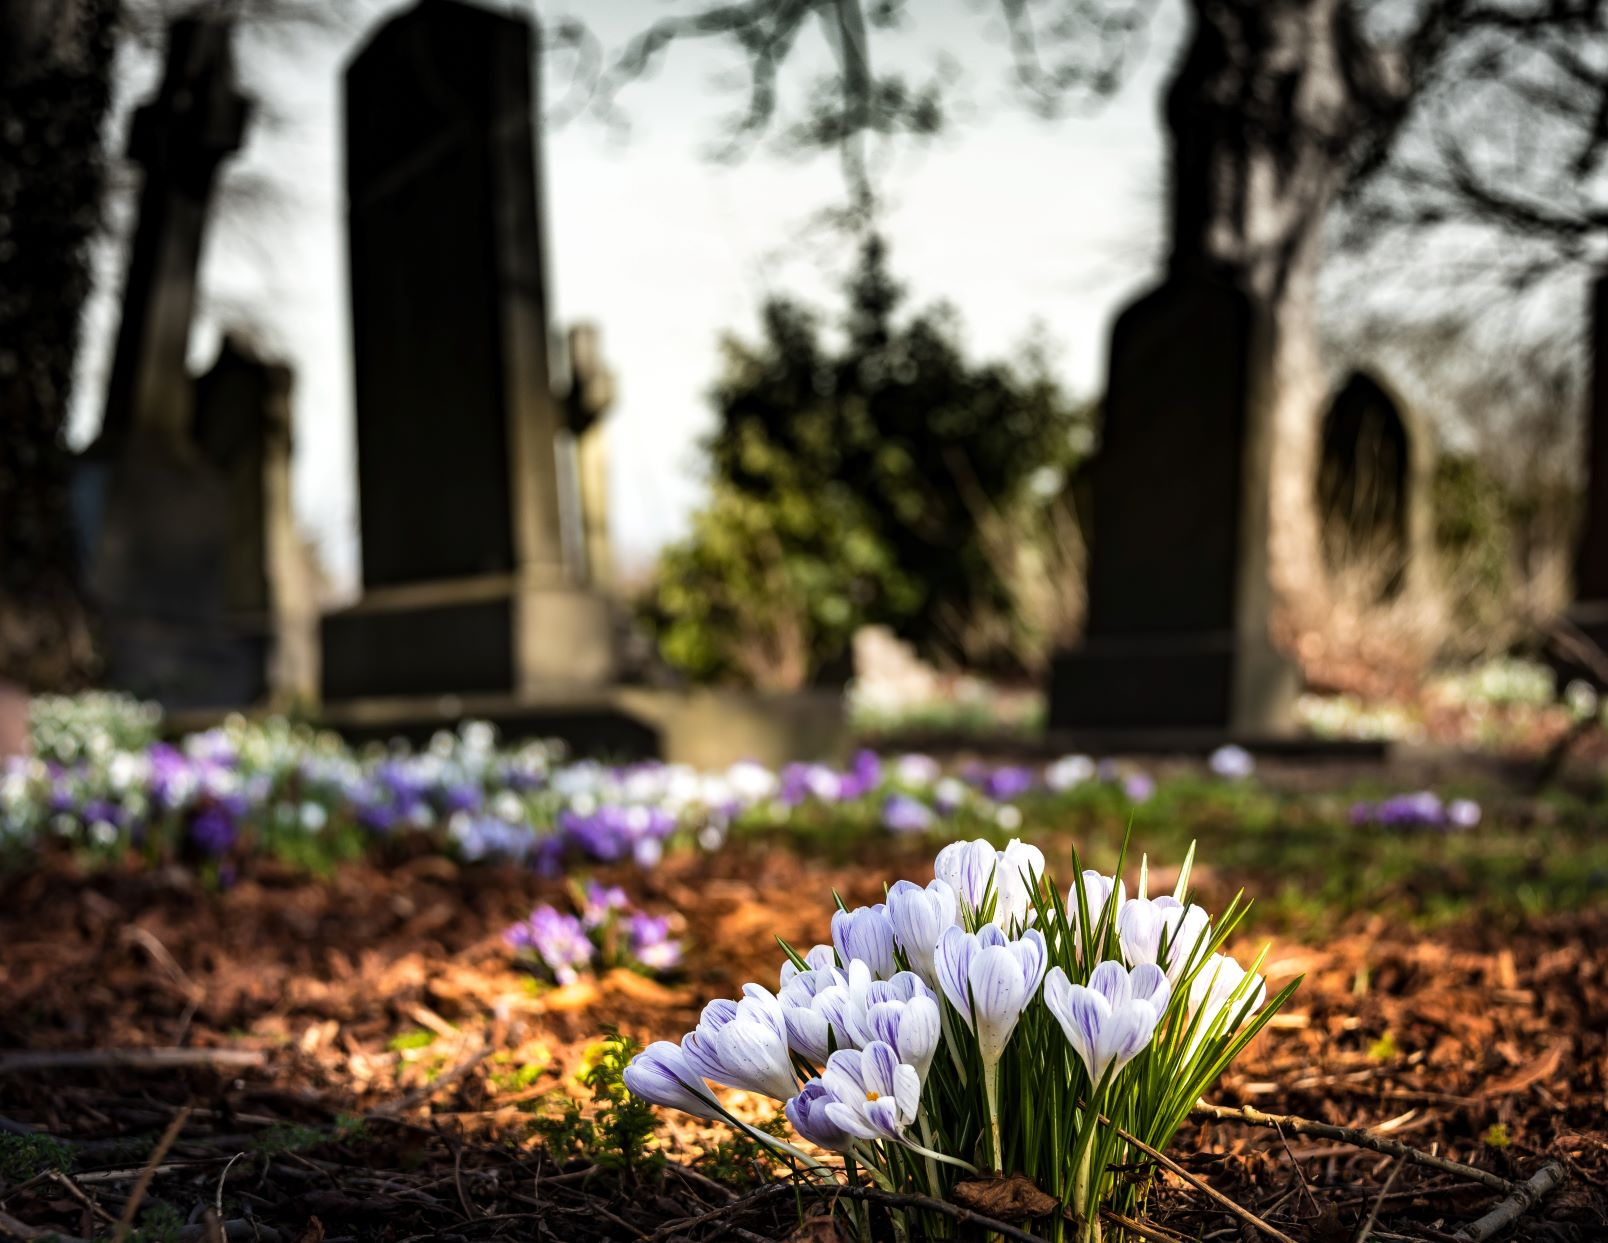 Considering a Cemetery for Your Loved One's Ashes